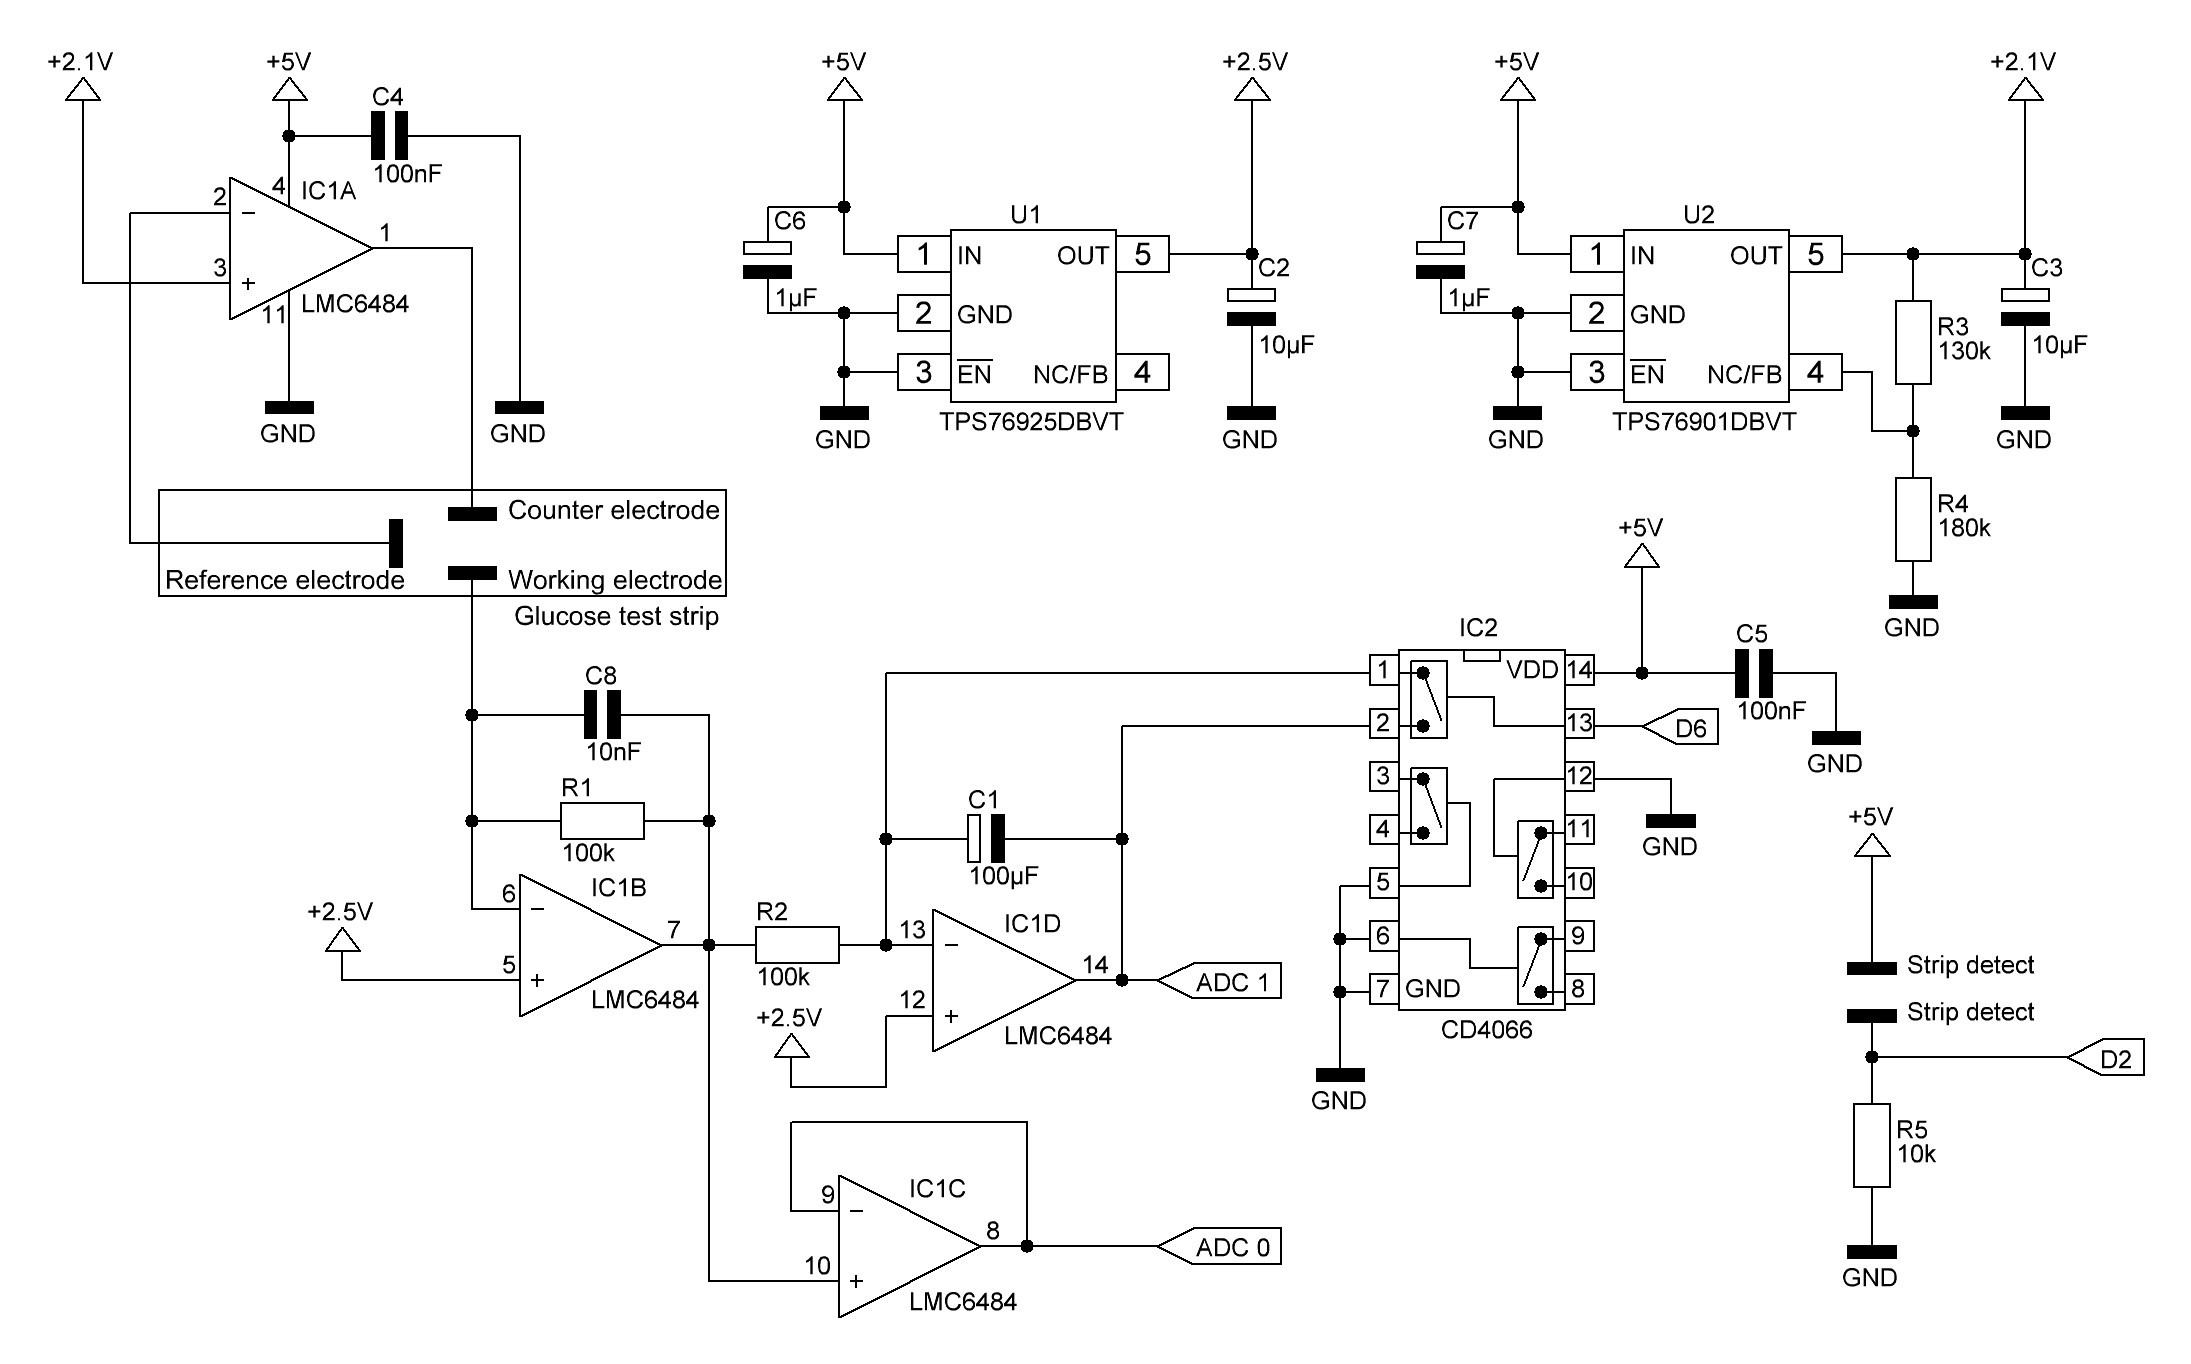 Basic Glucose Meter Schematic Details Quad 2 Circuit Diagram I Changed The Max4575 Which Resets Op Amp Integrator By Shortening Capacitor Bilateral Switch Cd4066 Ic2 Because This Chip Is Much